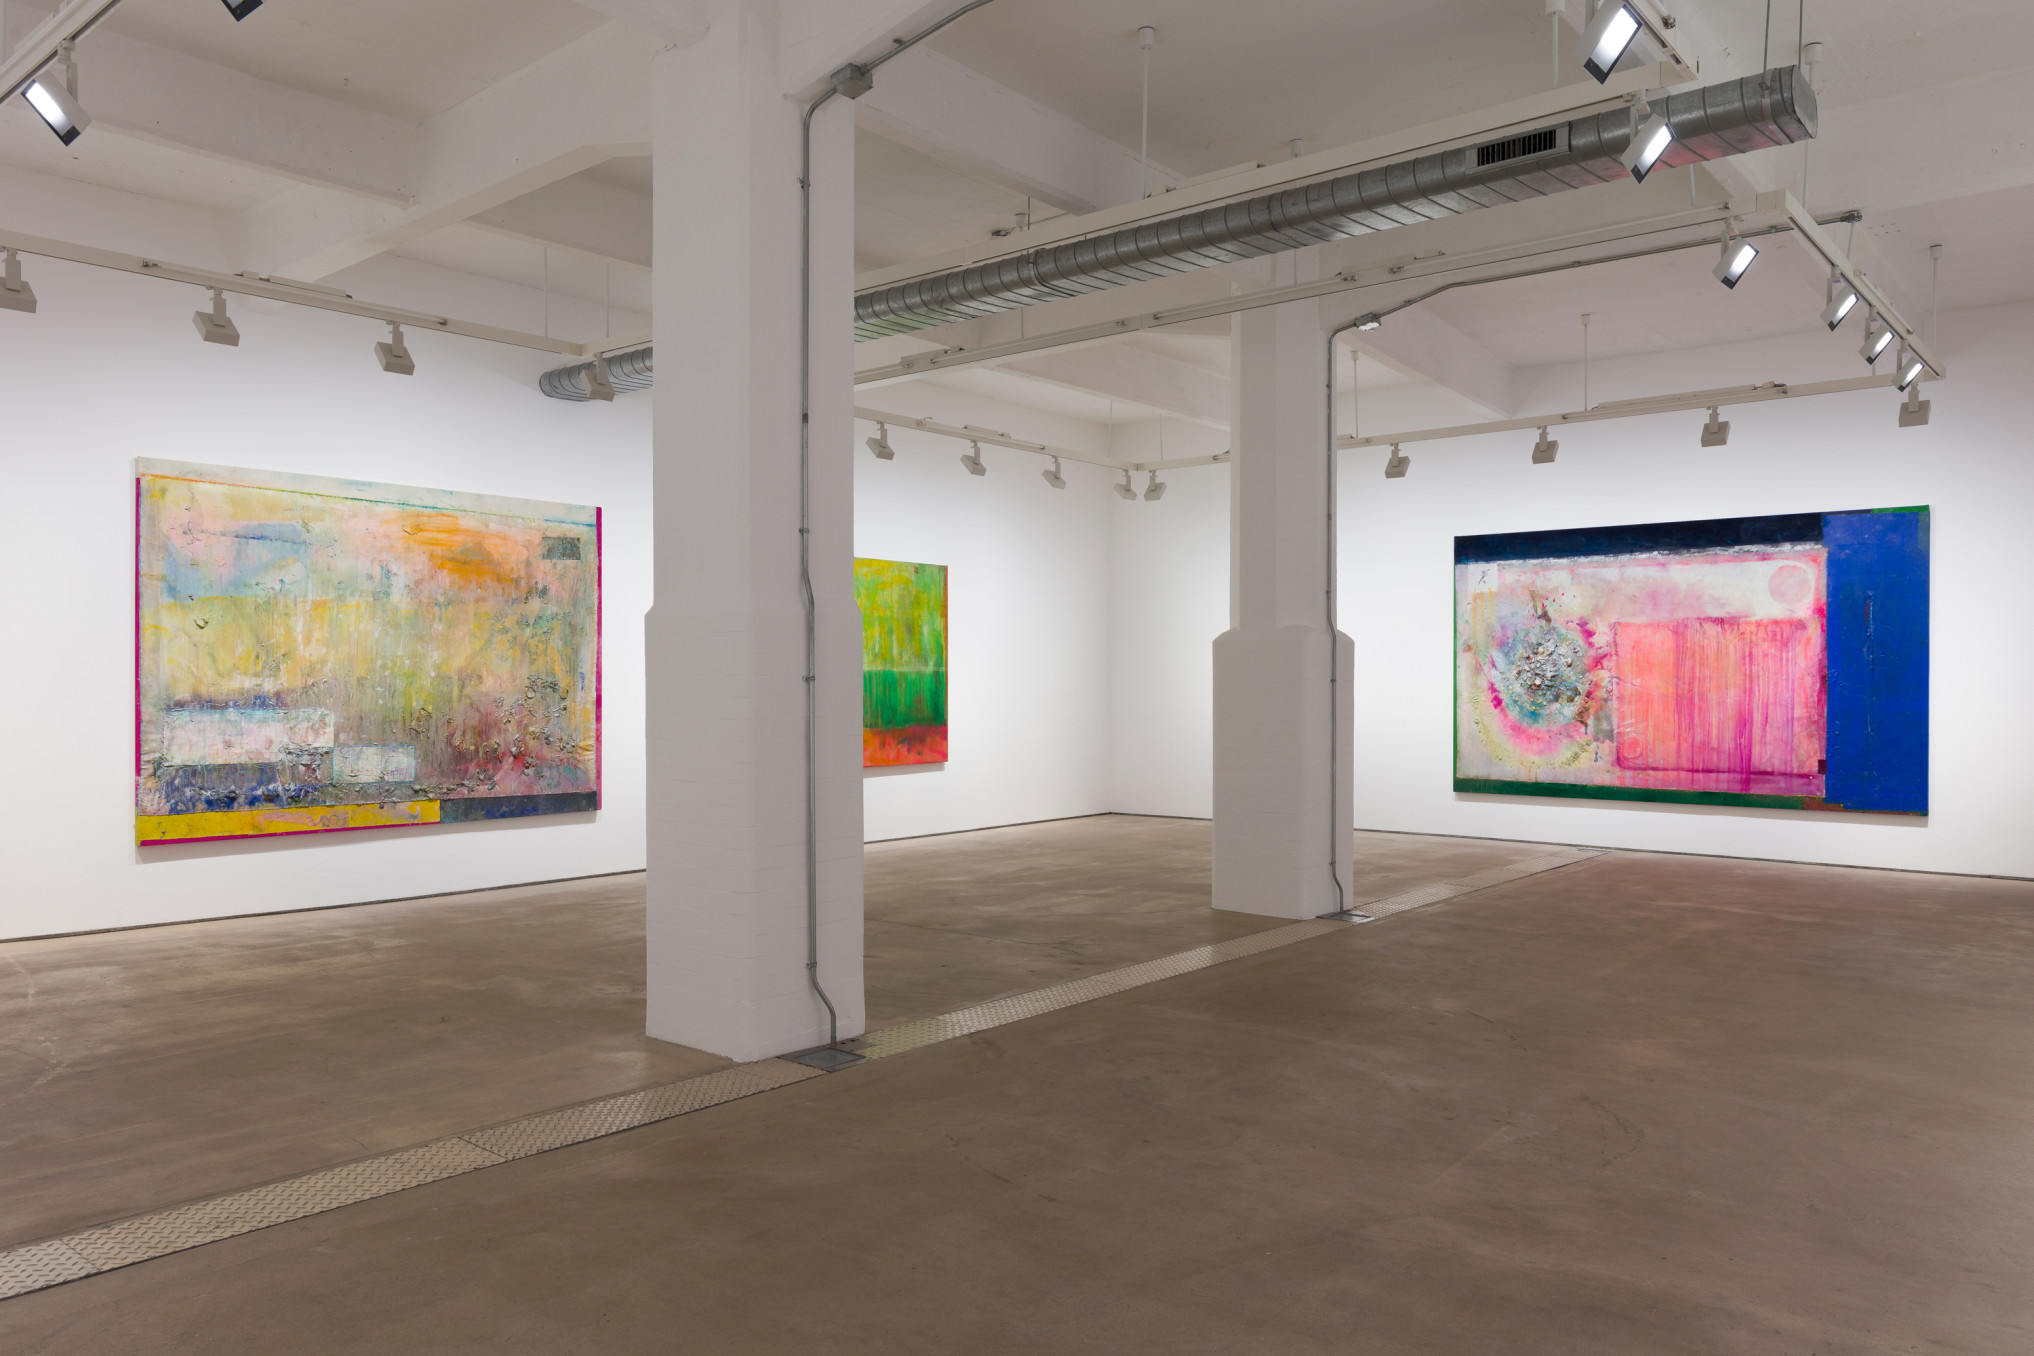 Frank Bowling, Installation view 'More Land than Landscape', Hales London, 10 May - 22 June 2019